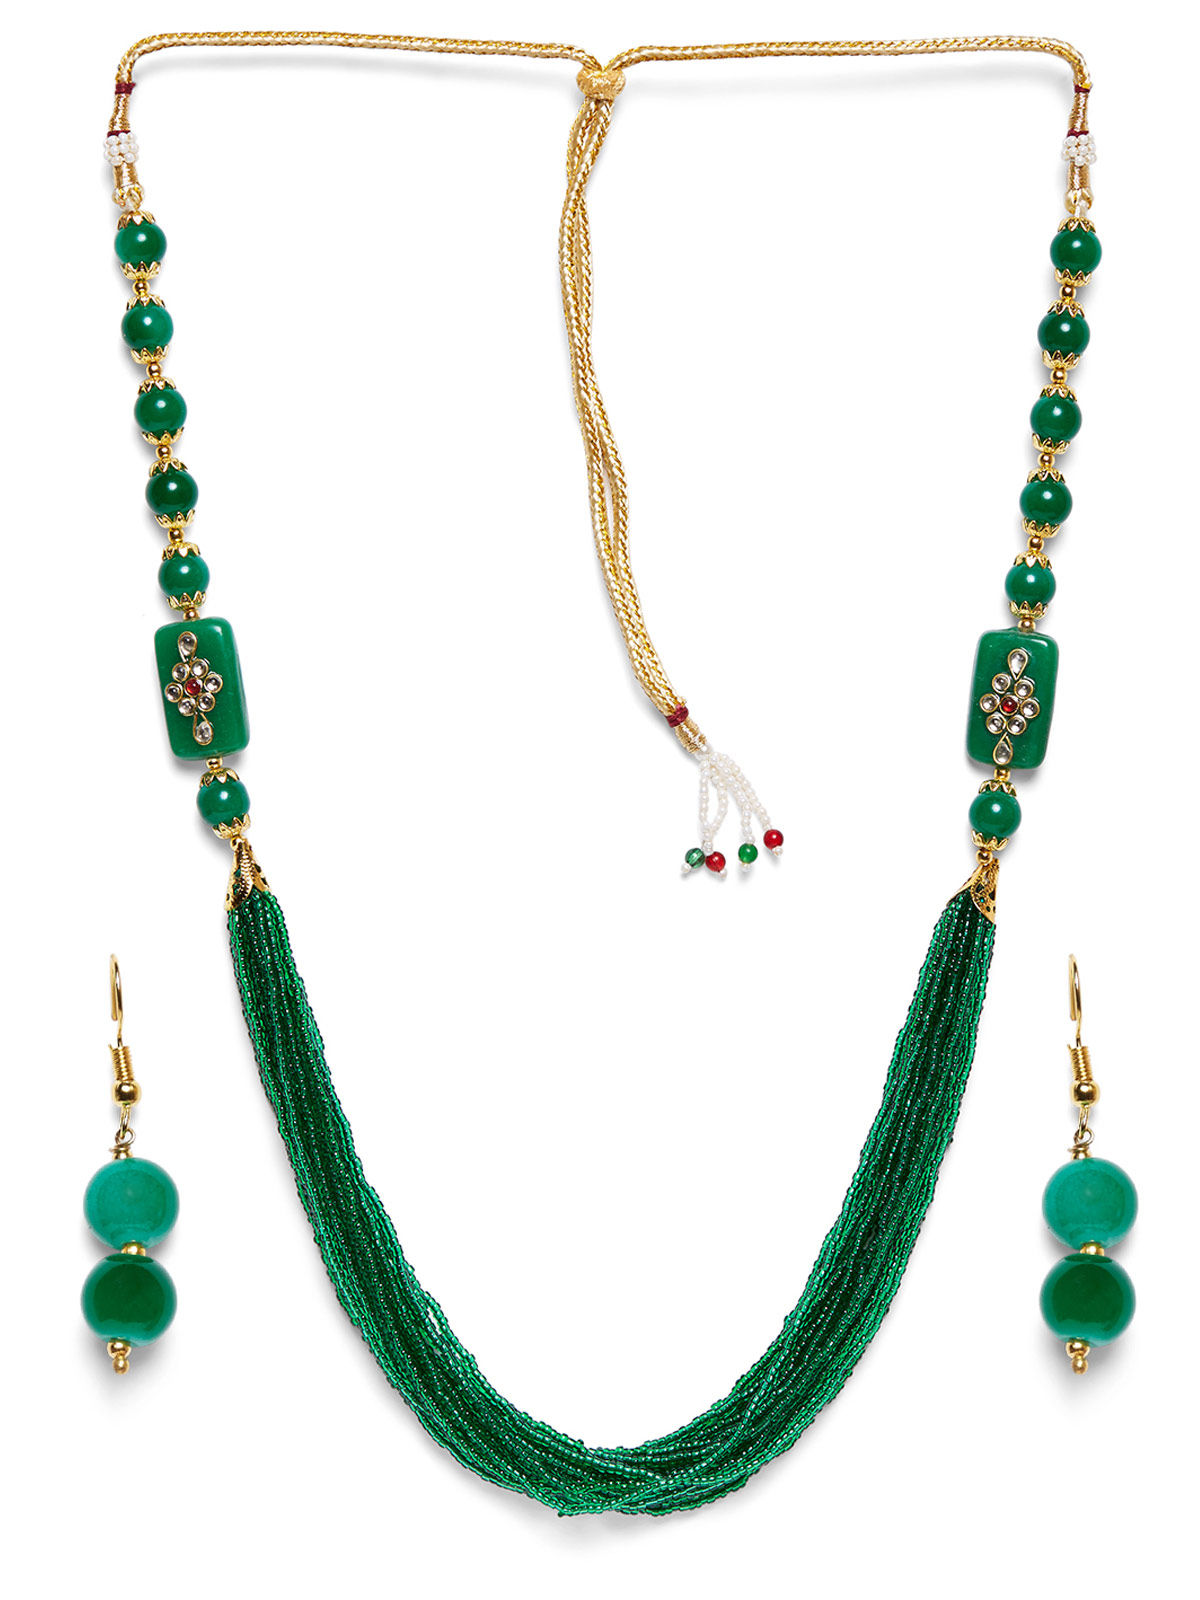 Imli Street green beaded neckpiece and earrings set